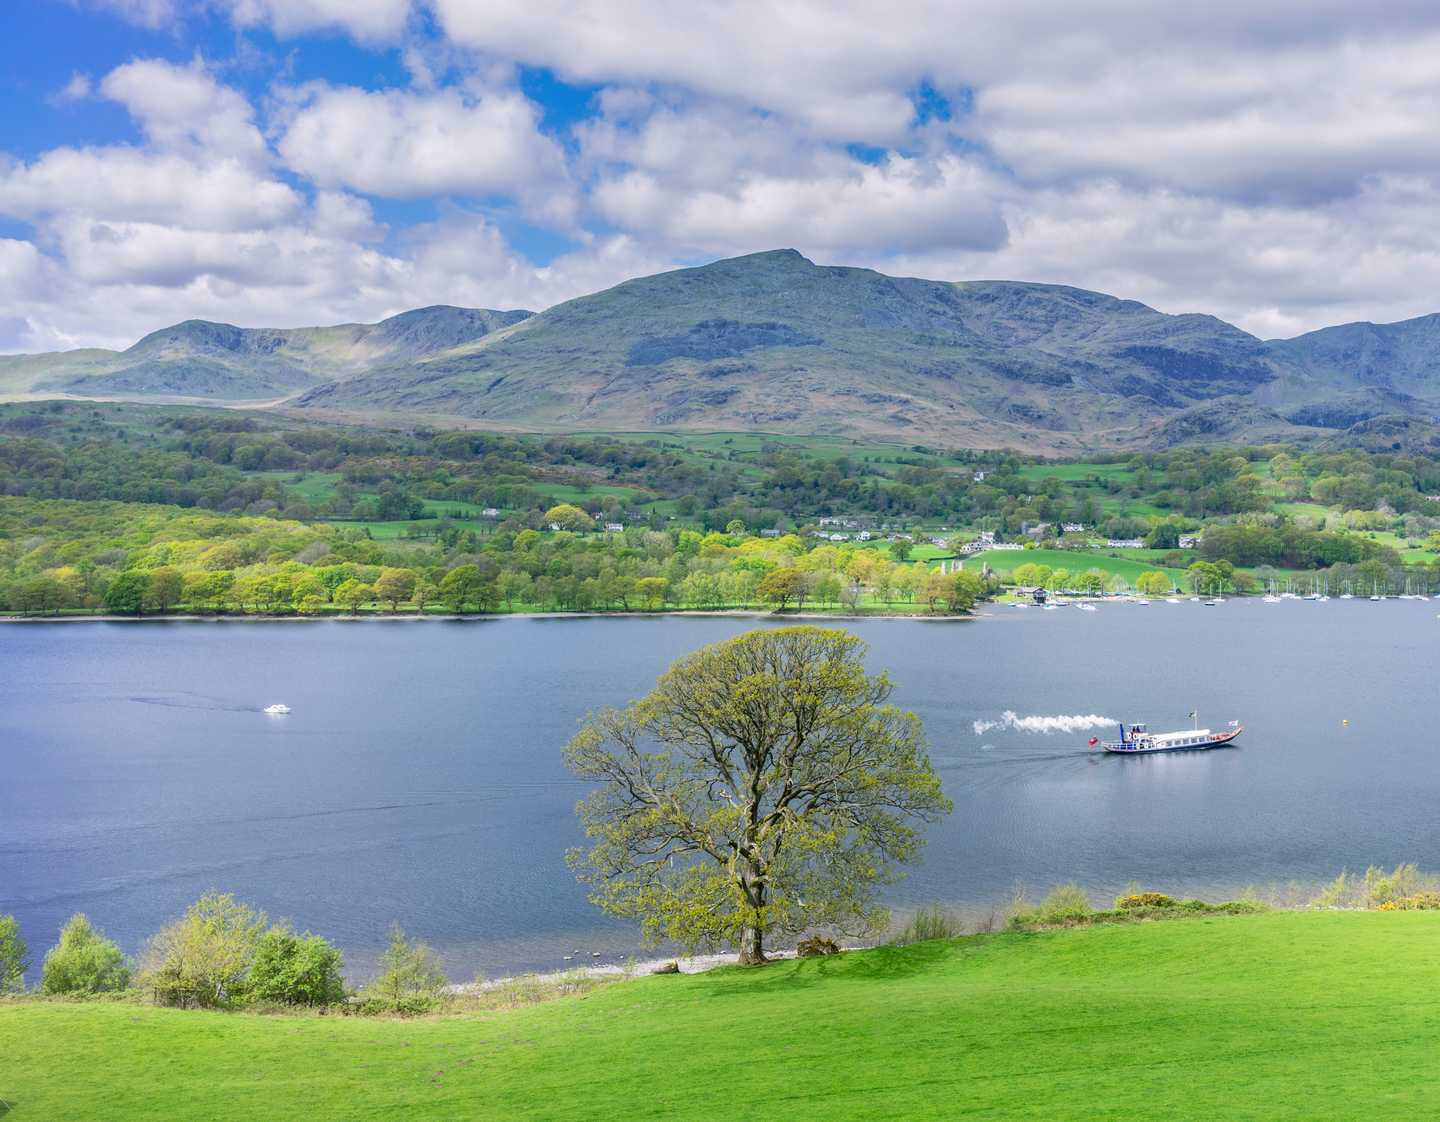 A boat on Coniston Water with the mountains in the background